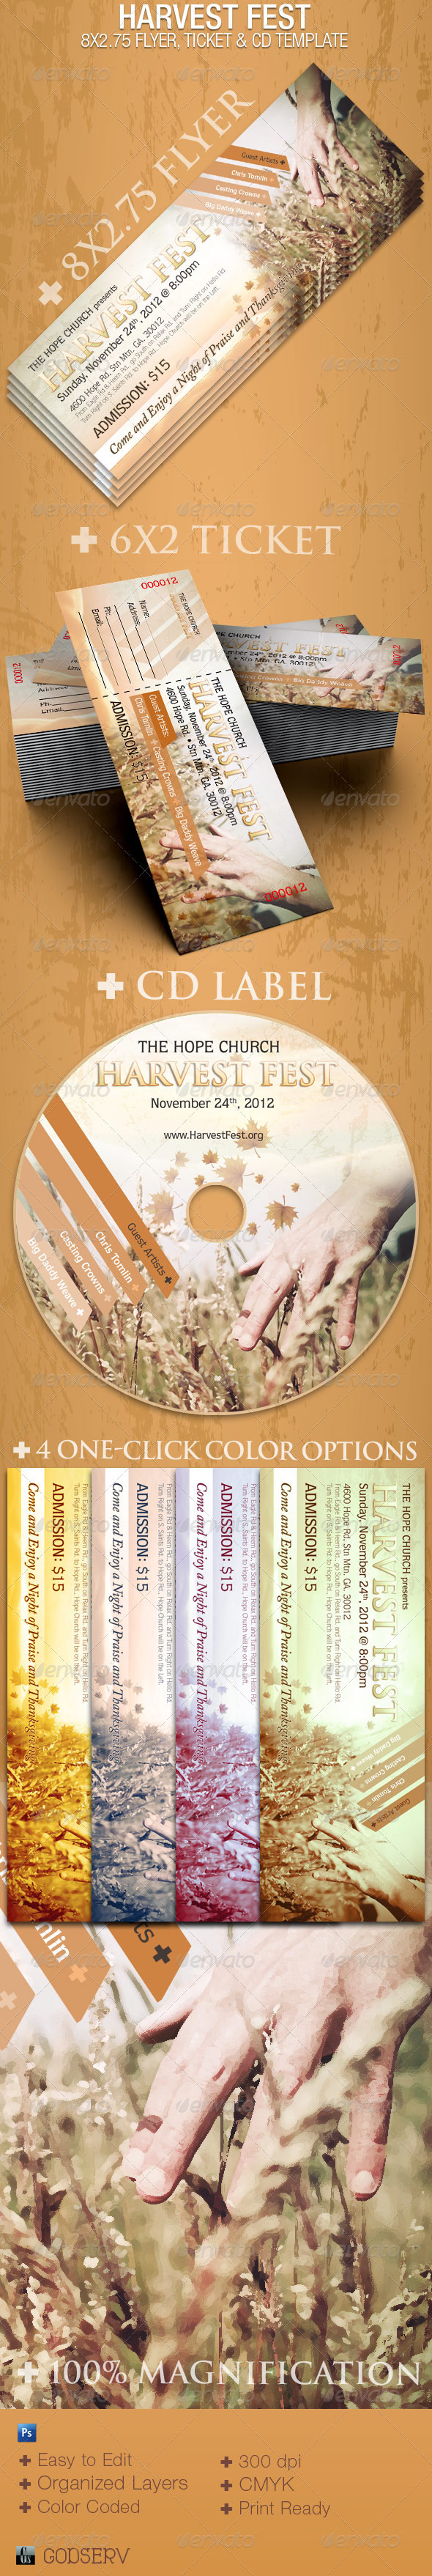 Harvest Fest Flyer CD Ticket Template - Church Flyers